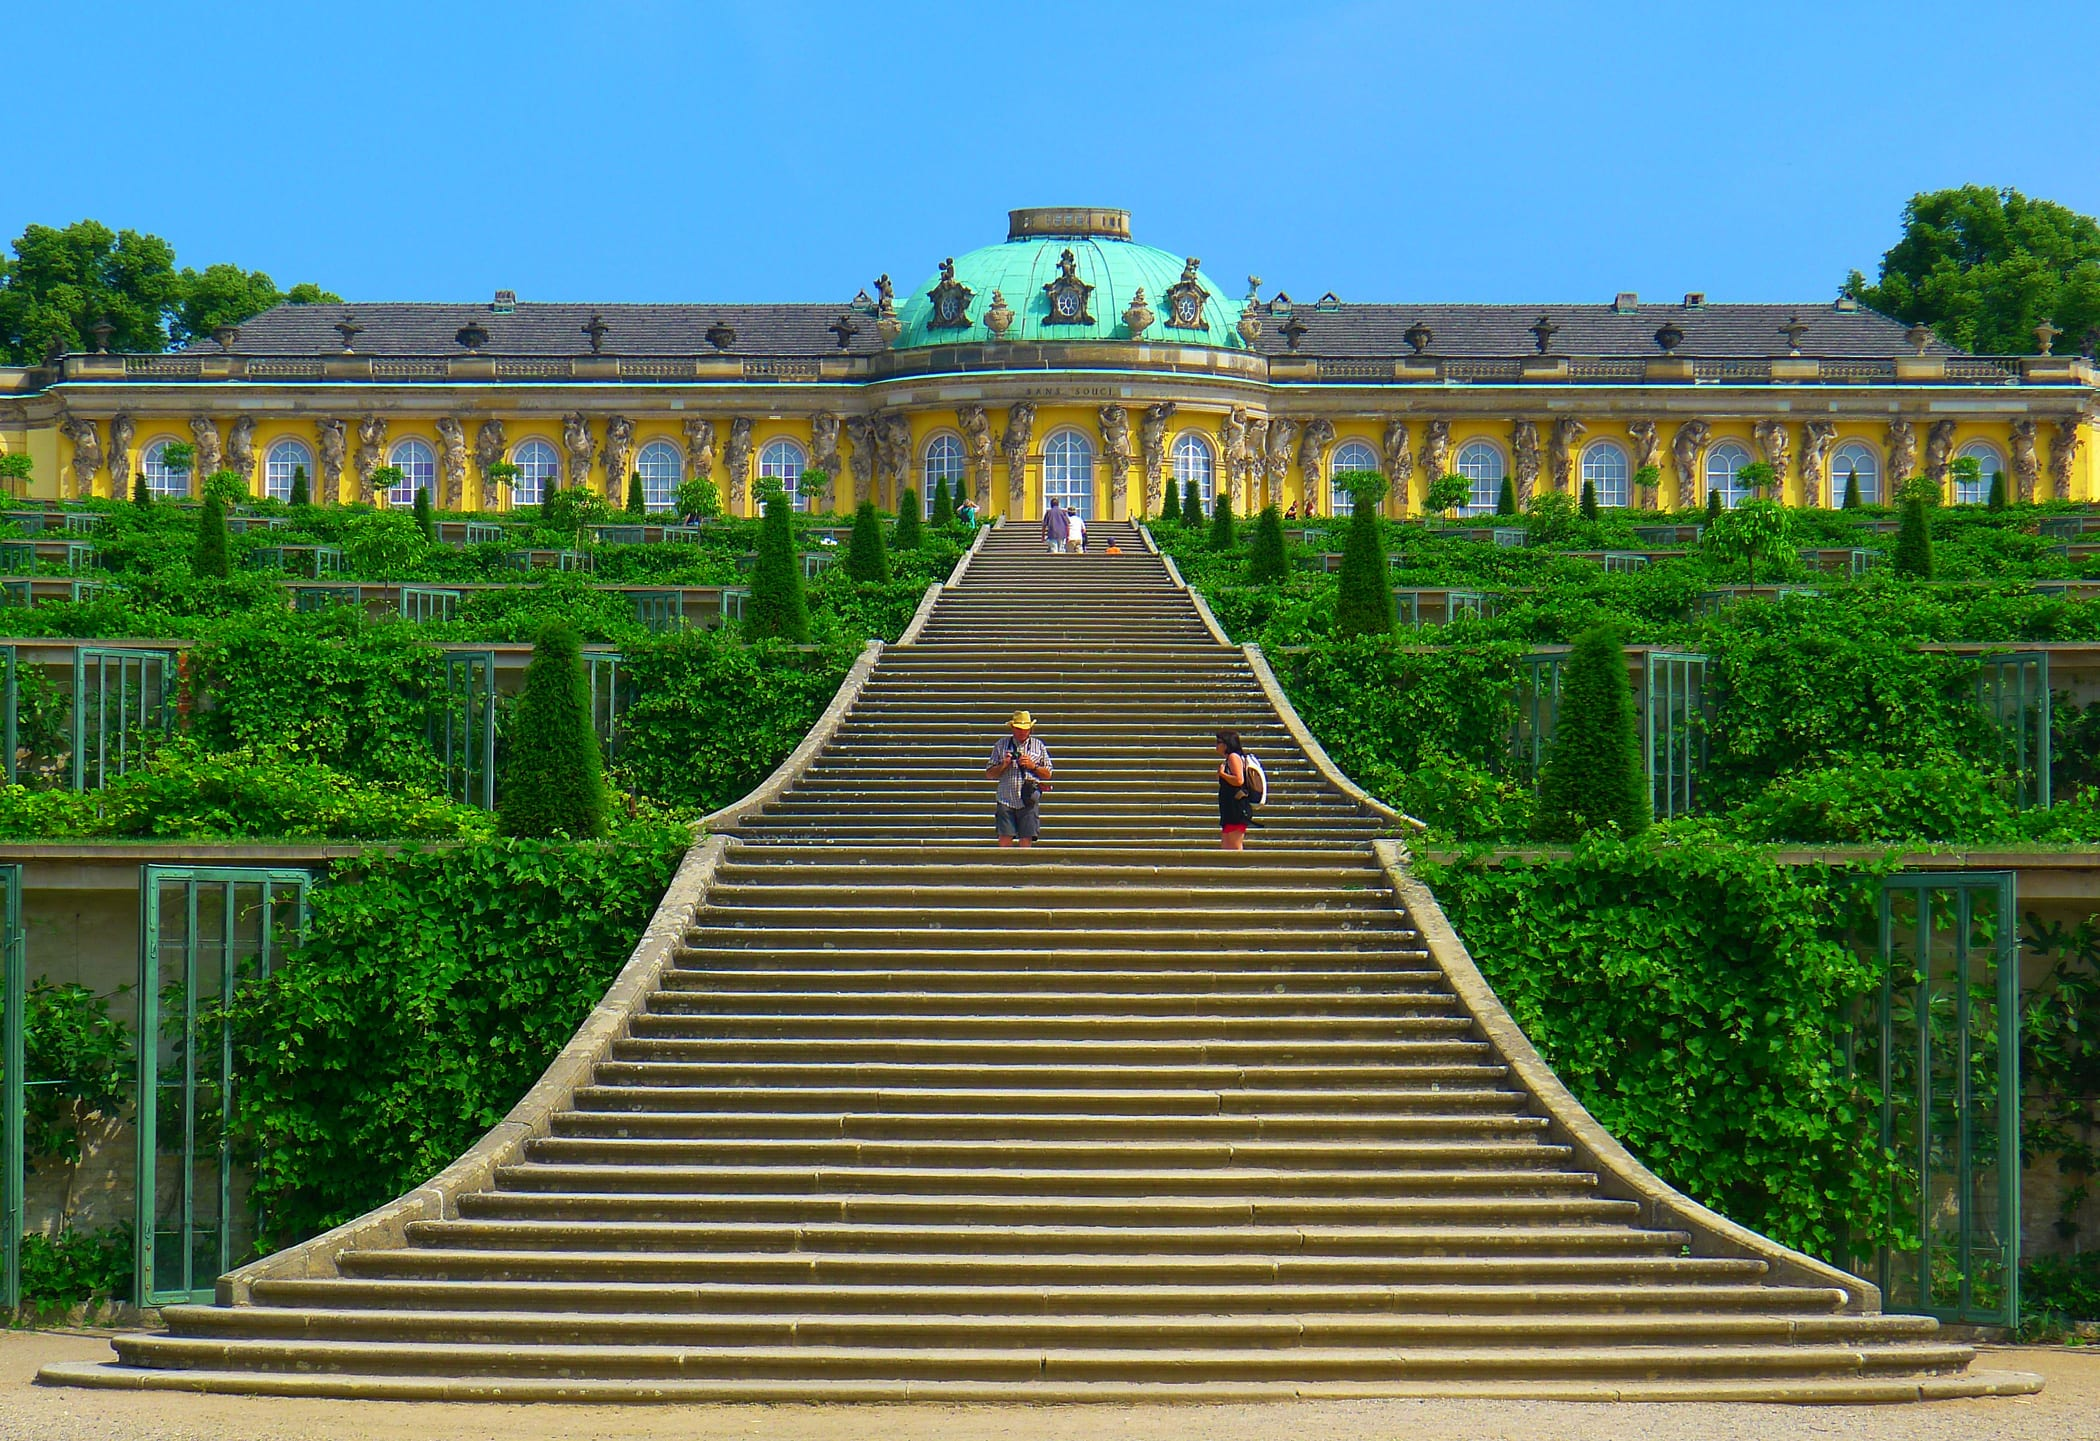 The natural stone steps of a stairway garden feature climb a small - Staircases Worth The Climb Sanssouci Potsdam Germany